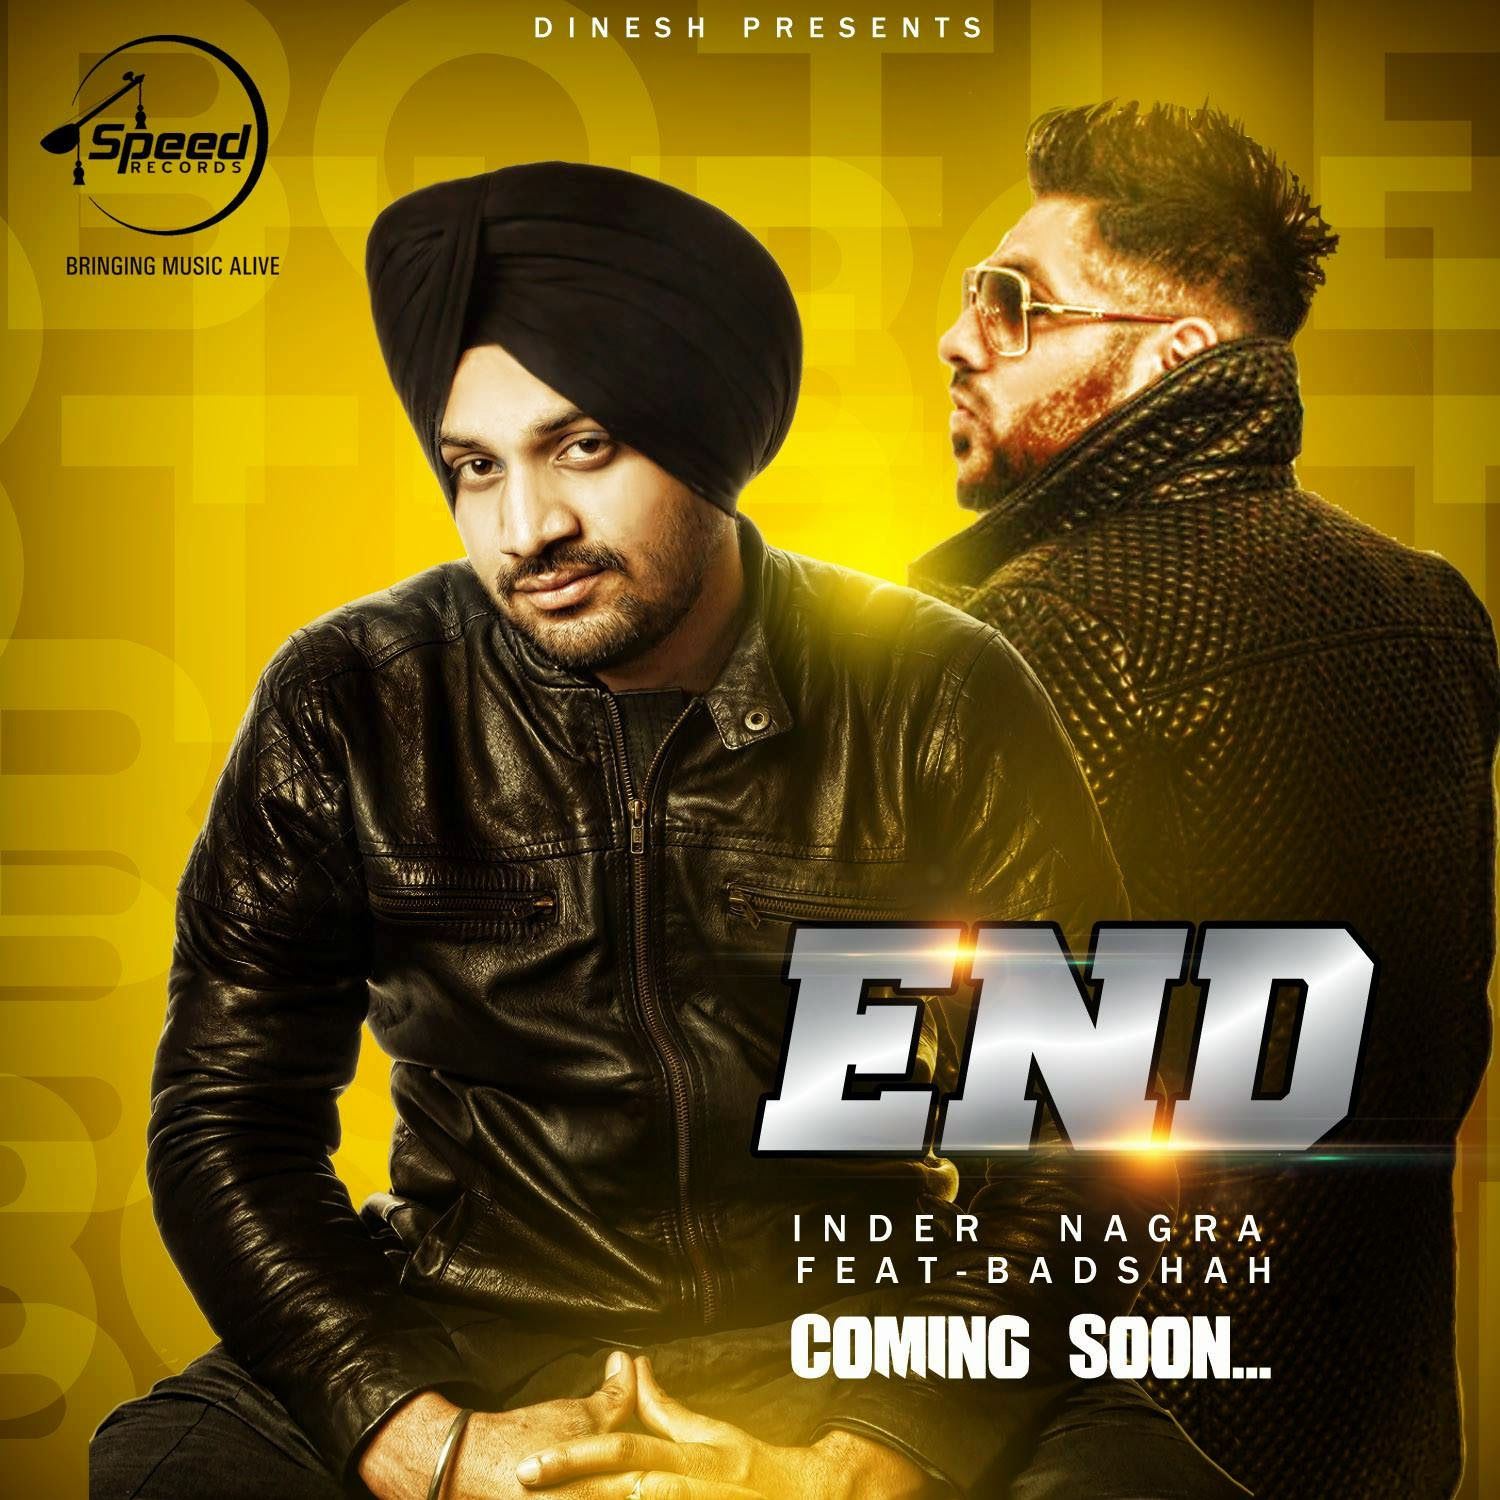 END Song Inder Nagra Ft Badshah